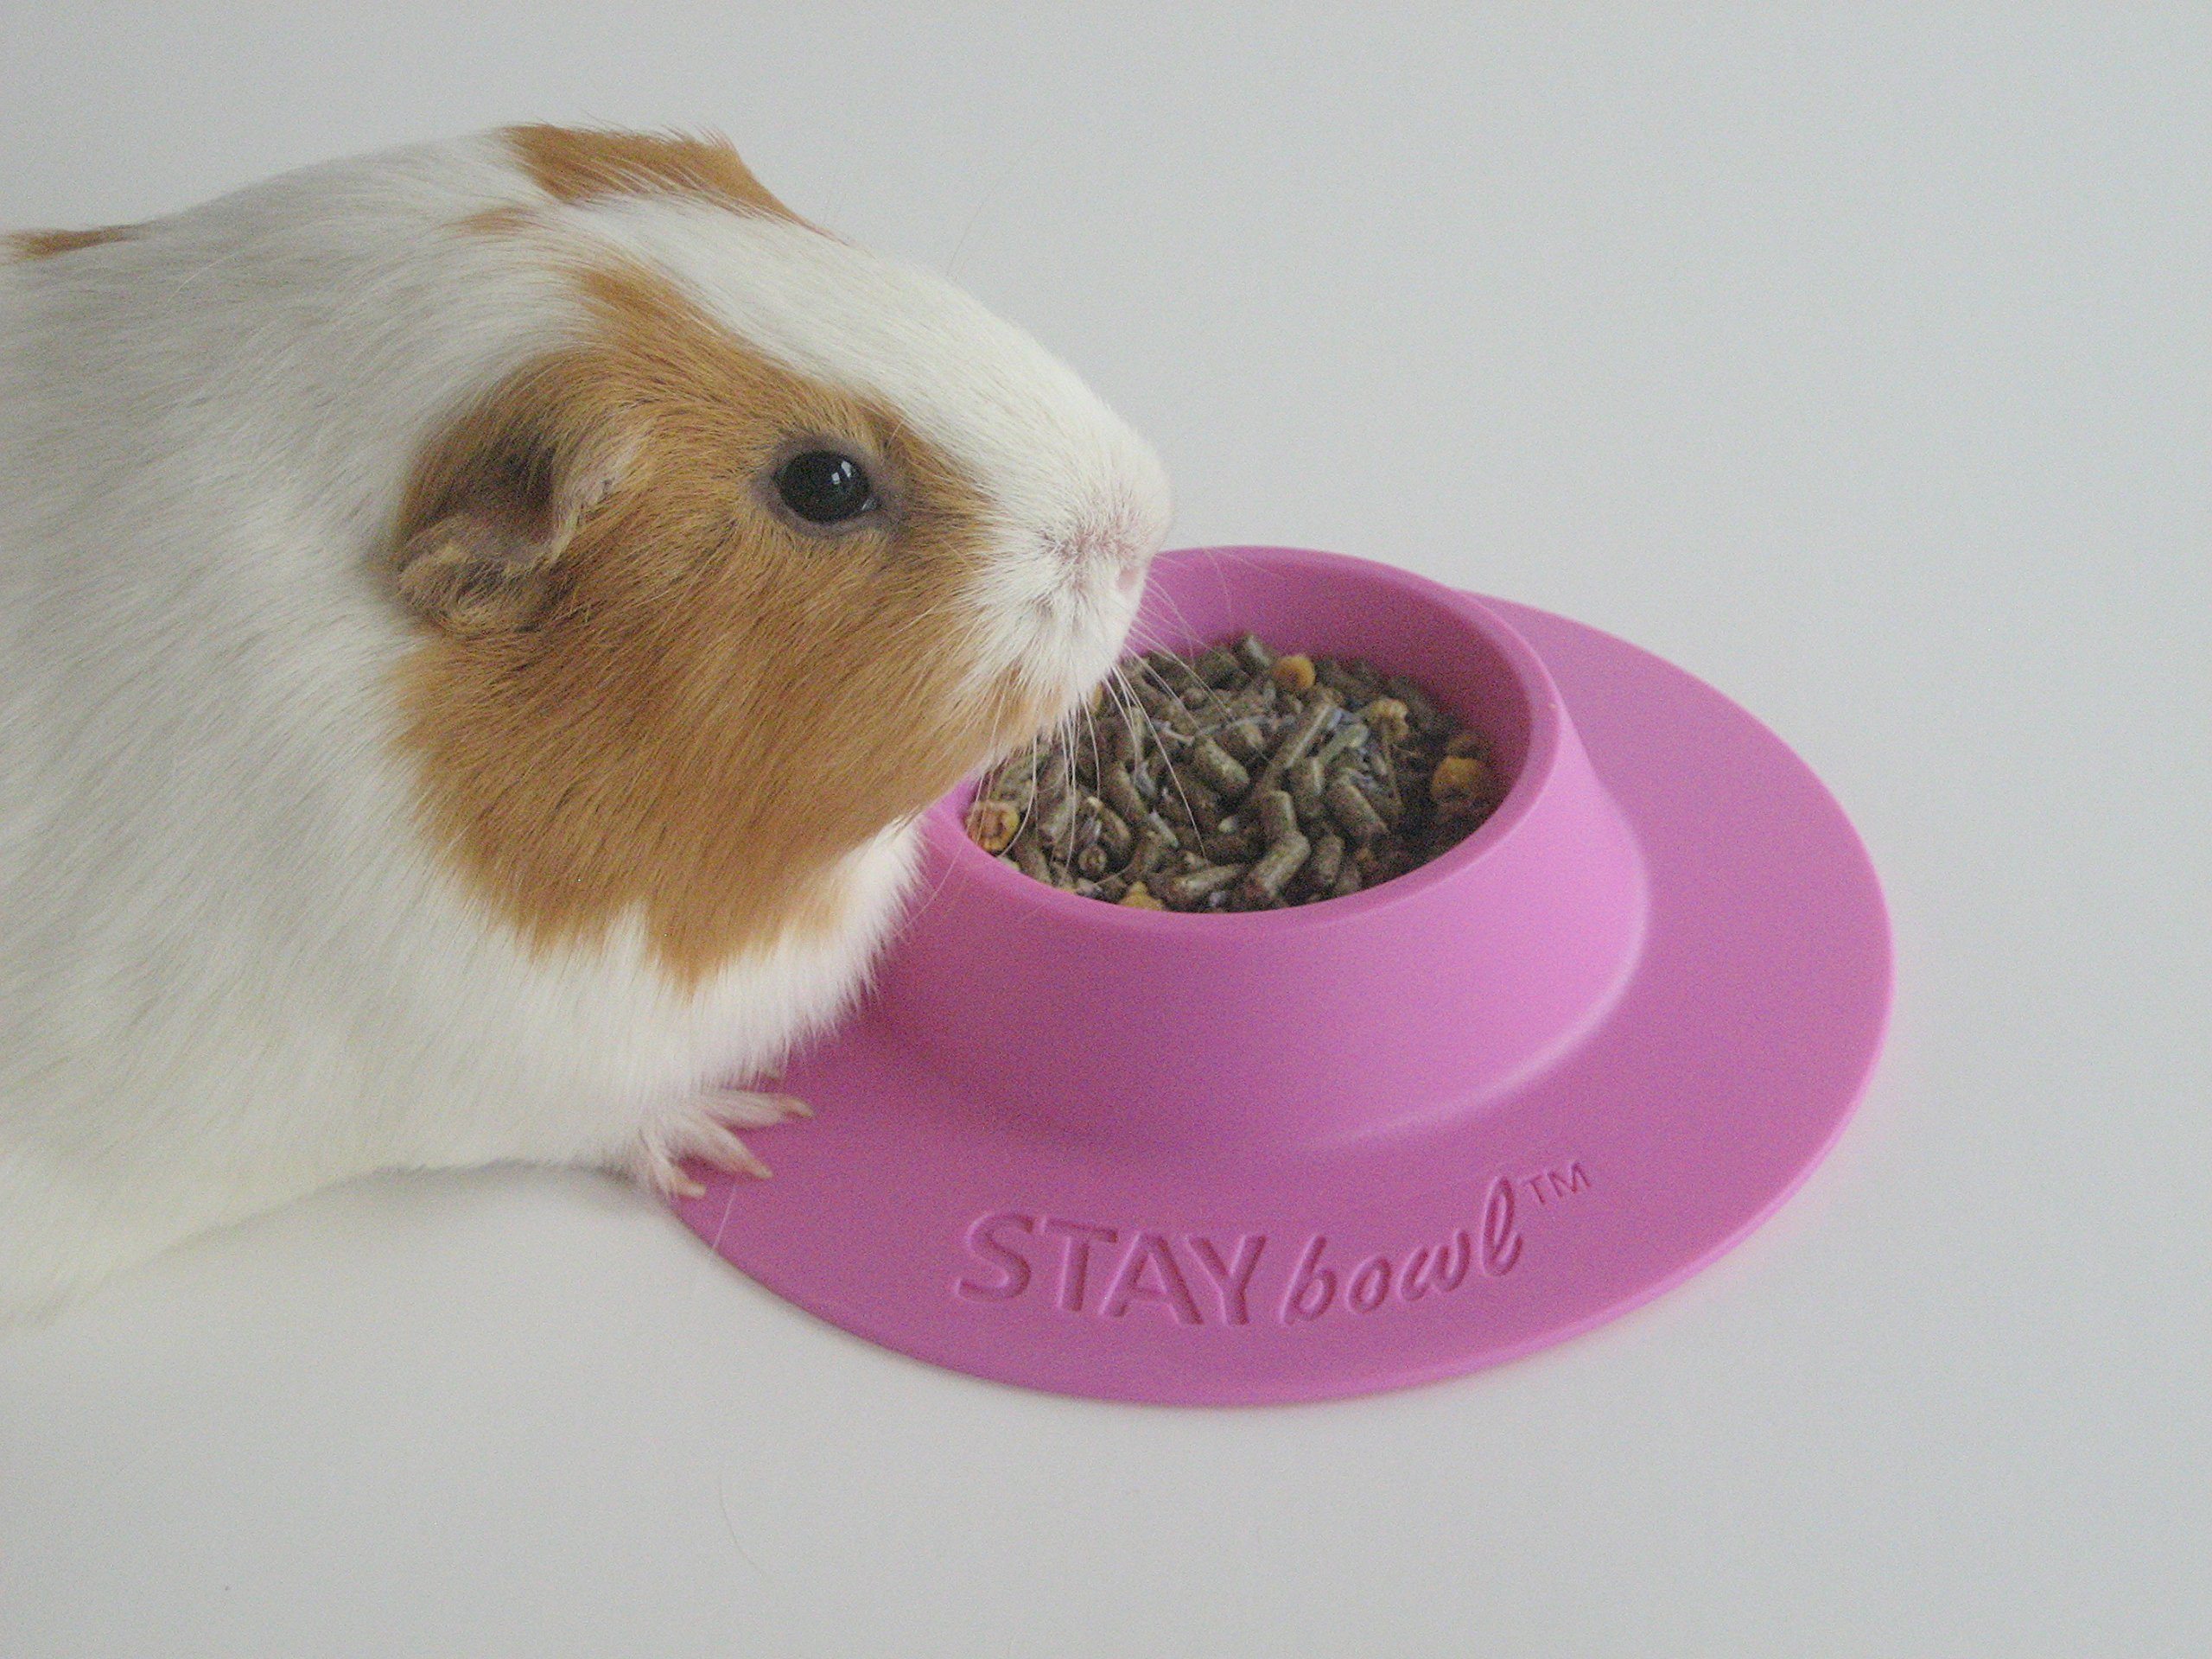 STAYbowl Tip-Proof Ergonomic Pet Bowl for Guinea Pig and Other Small Pets, 1/4-Cup Small Size, Lilac (Purple) by STAYbowl